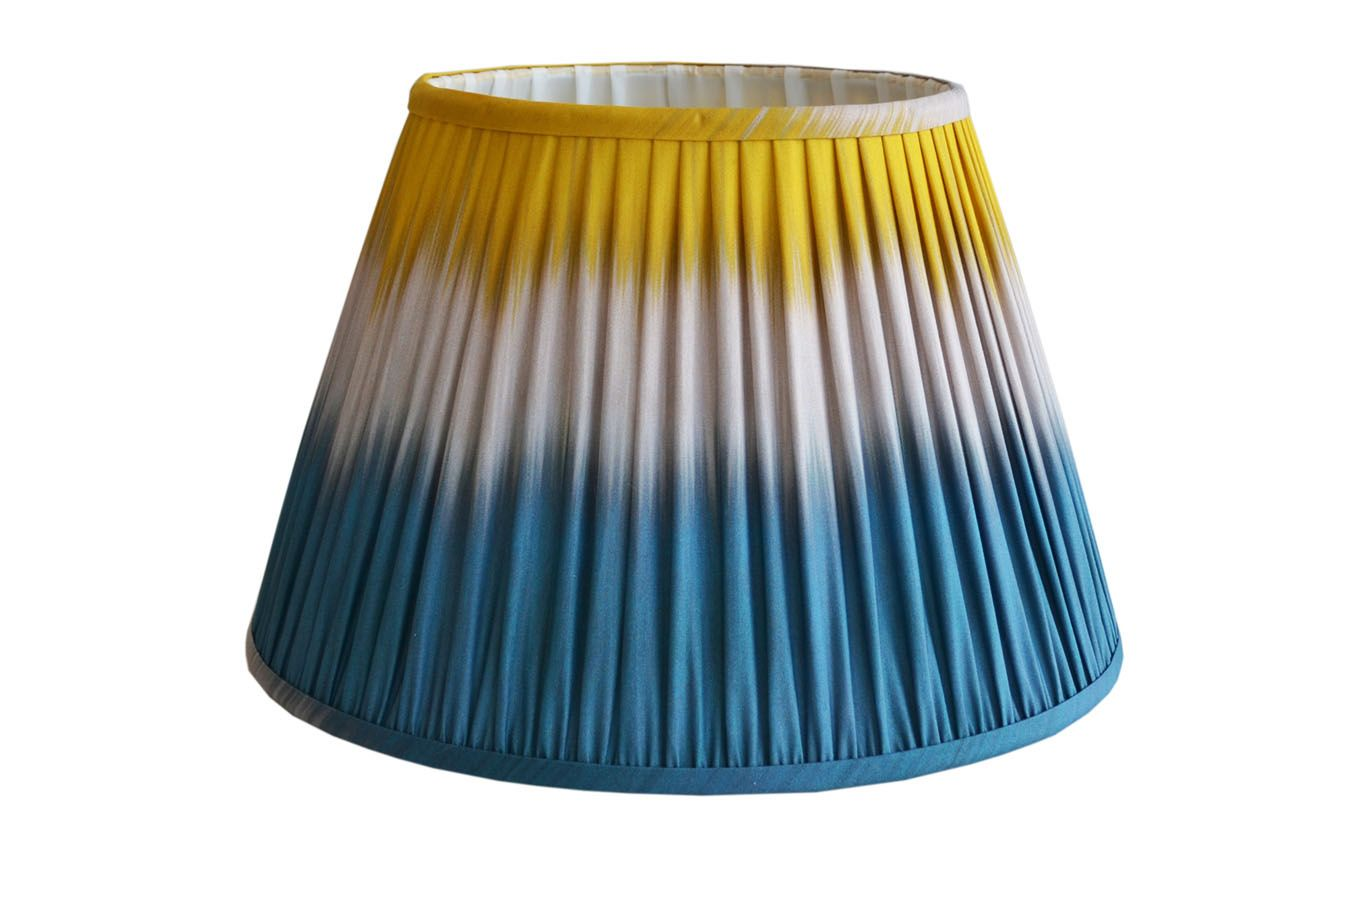 Teal/Yellow Empire shape pleated lampshade, made with ikat